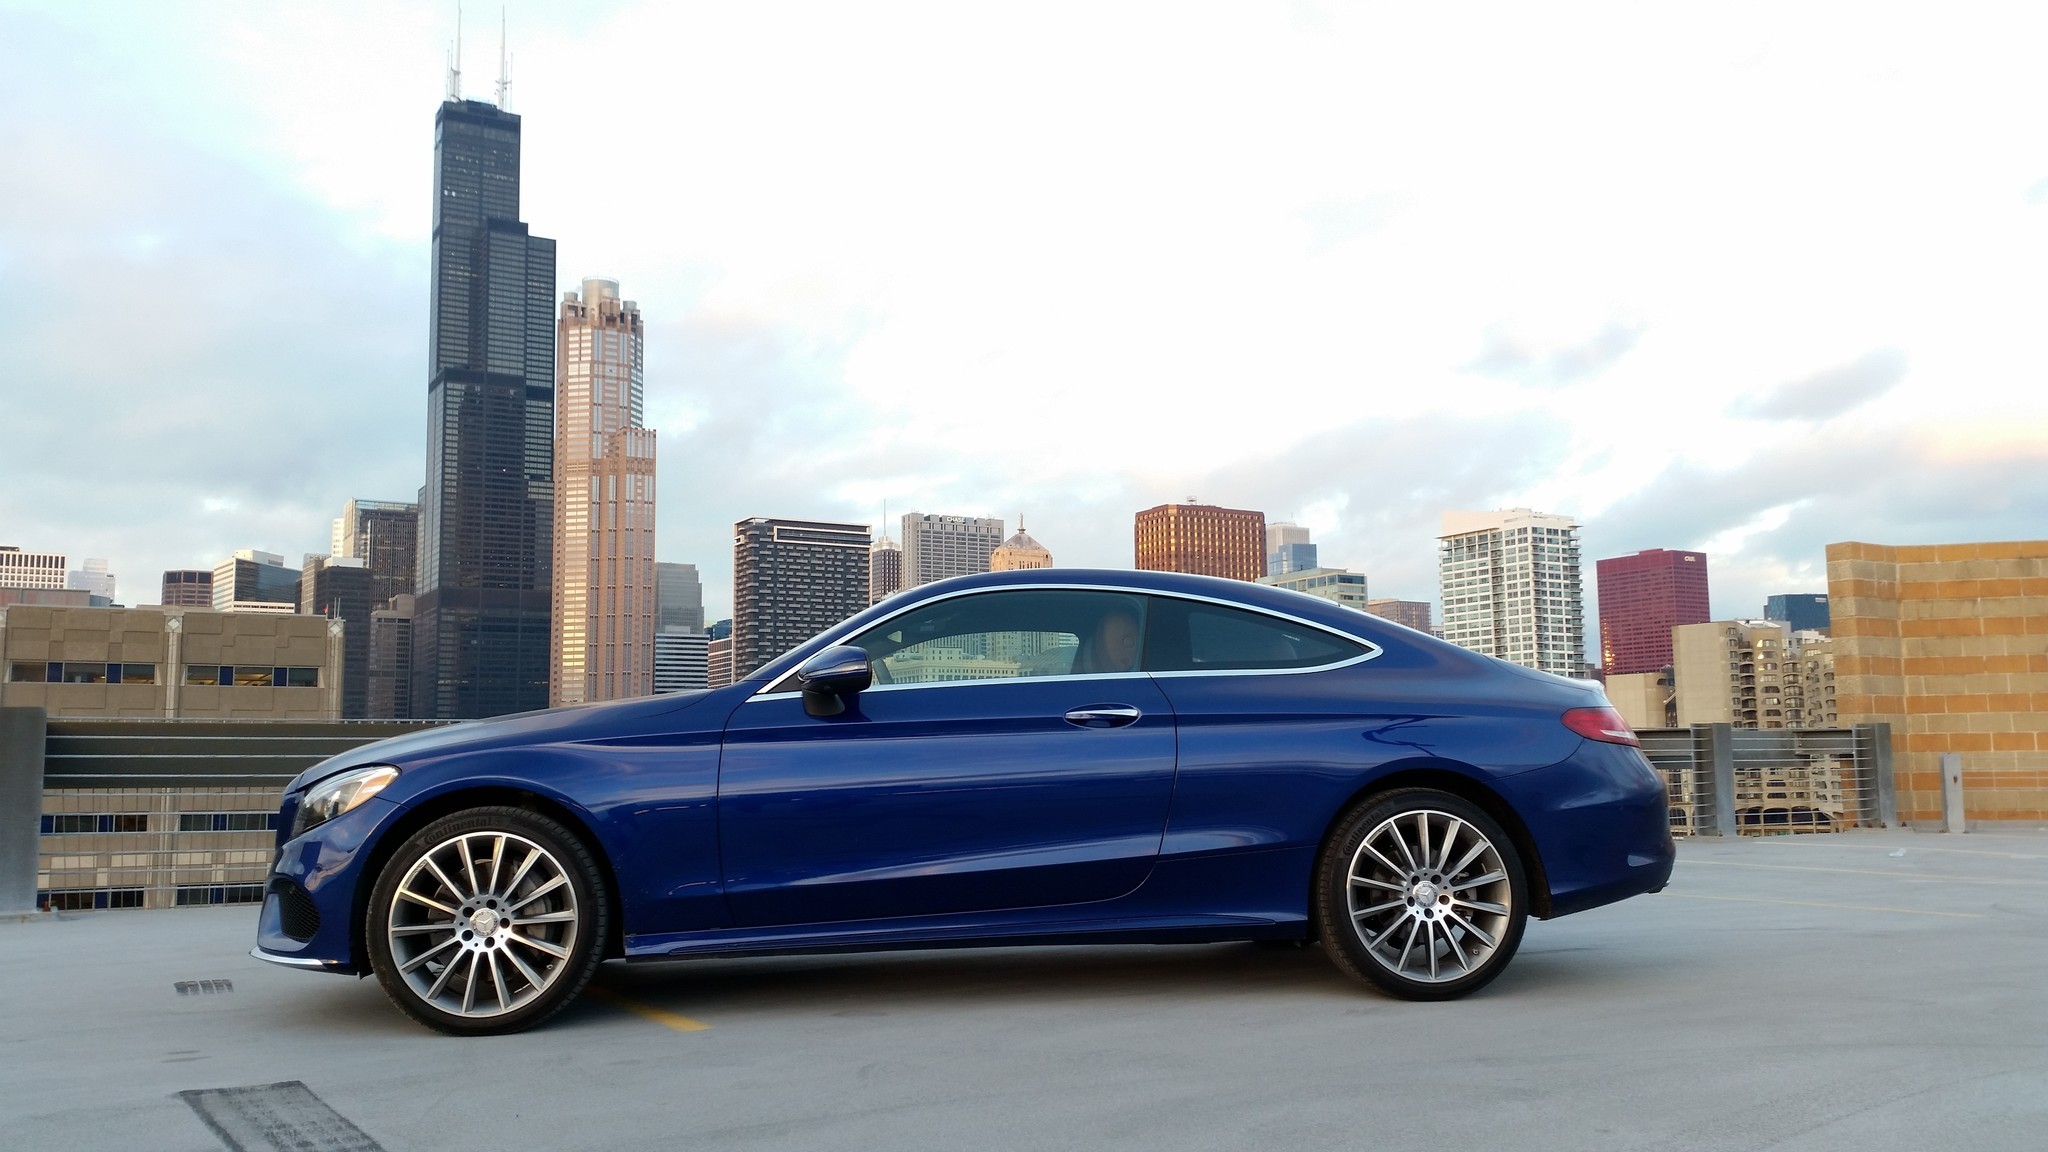 2017 mercedes benz c300 gallery chicago tribune for 2017 mercedes benz c300